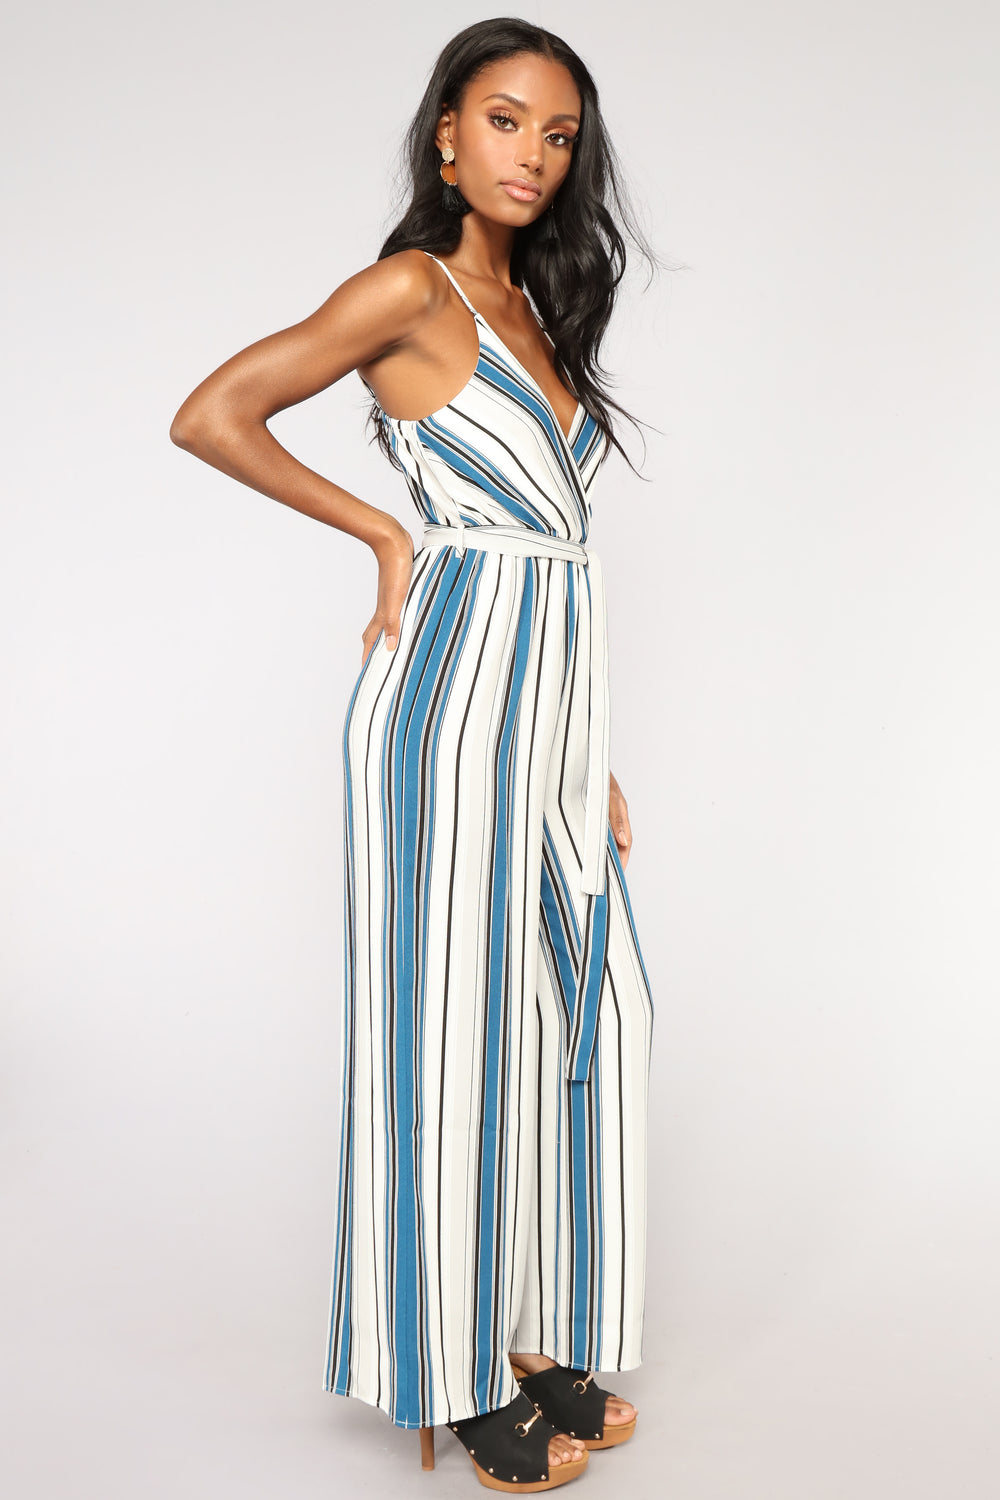 Going Places Stripe Jumpsuit - Teal